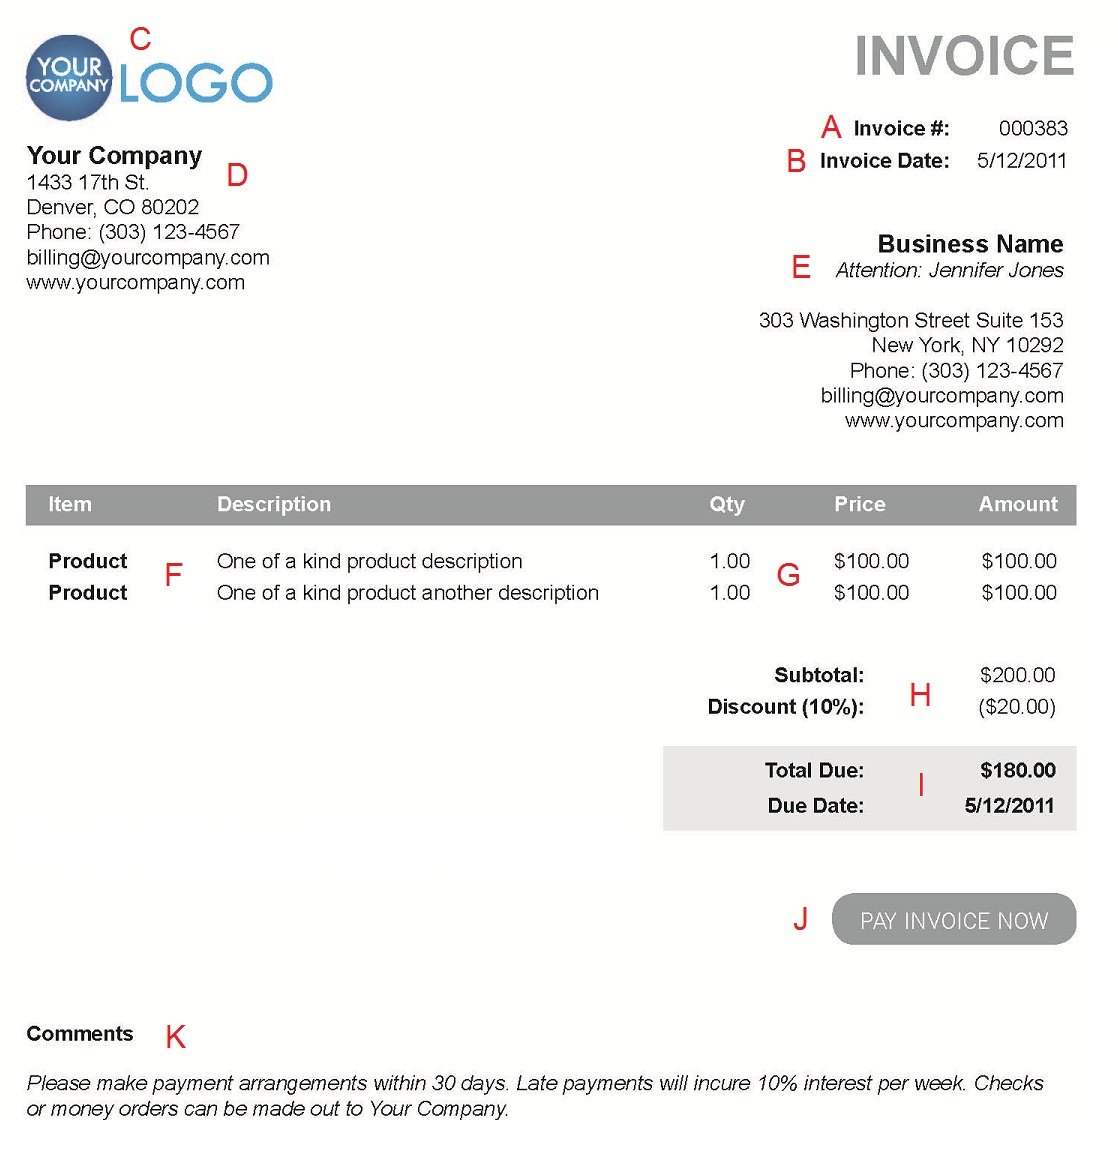 Ultrablogus  Surprising The  Different Sections Of An Electronic Payment Invoice With Handsome A  With Beauteous Hp Receipt Printer Also Nm Gross Receipts In Addition Parking Receipt Generator And Tax Donation Receipt Template As Well As Missouri Tax Receipt Coin Additionally Receipt For Chicken Pot Pie From Paysimplecom With Ultrablogus  Handsome The  Different Sections Of An Electronic Payment Invoice With Beauteous A  And Surprising Hp Receipt Printer Also Nm Gross Receipts In Addition Parking Receipt Generator From Paysimplecom